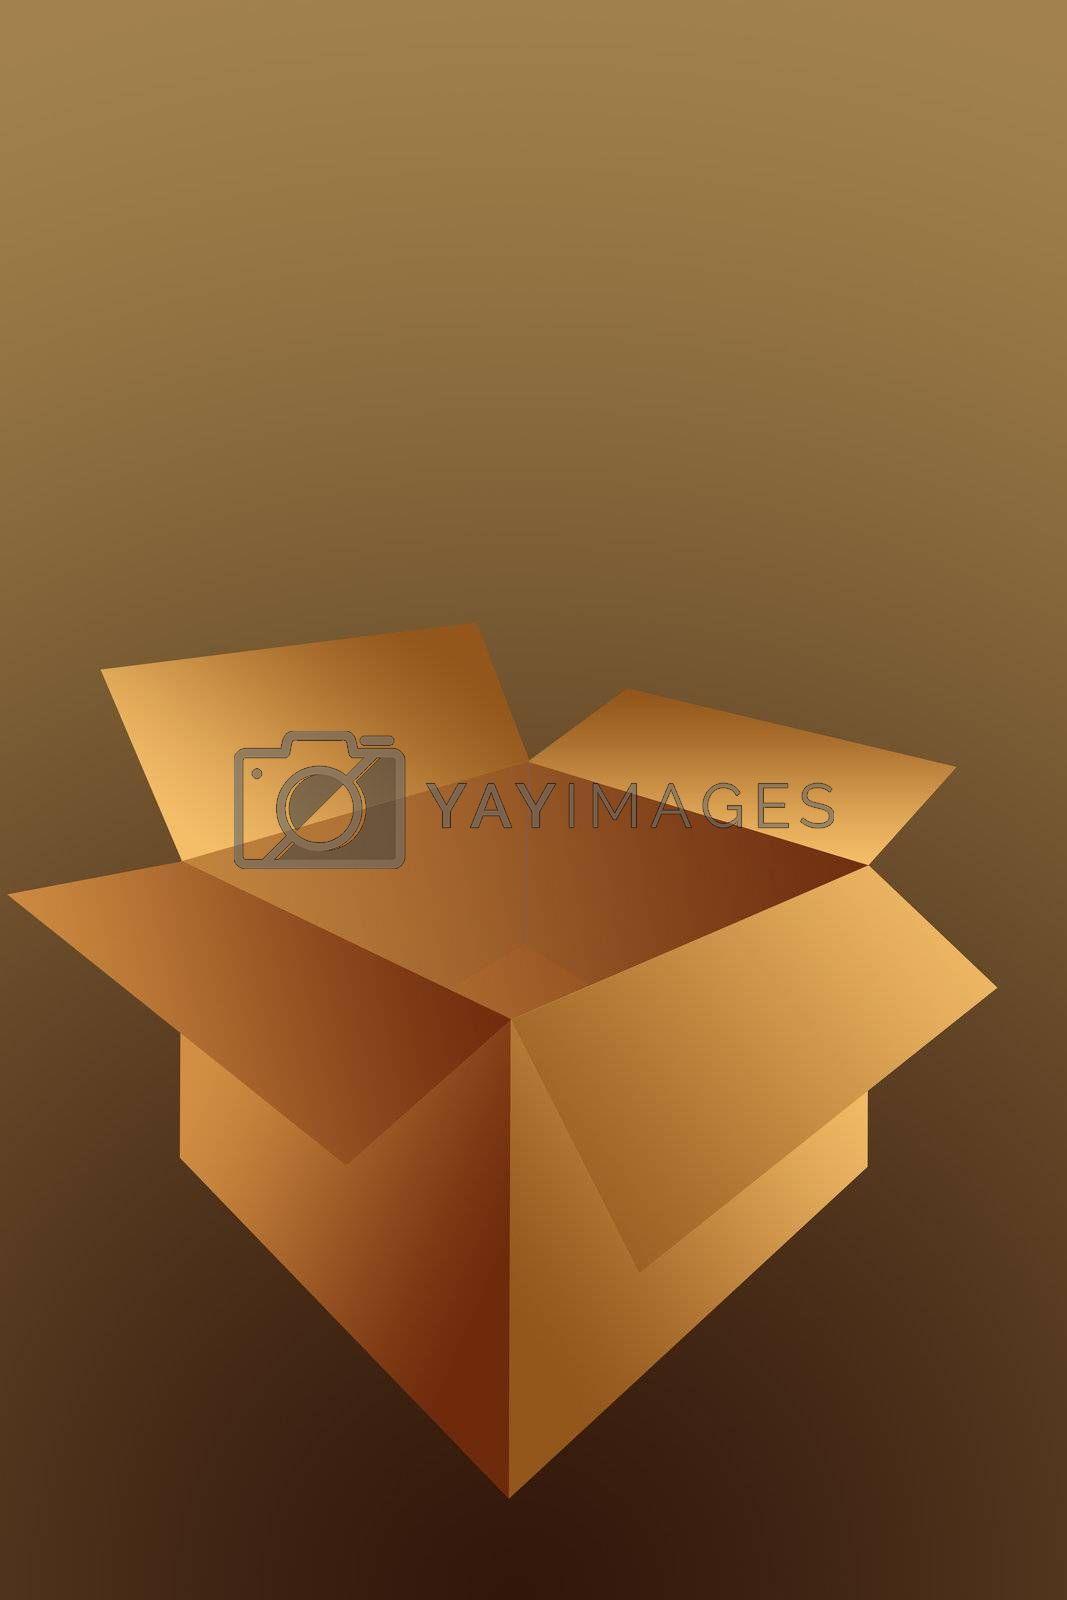 Open  Empty Cardboard Shipping Box Illustration Isolated on a Brown Background.